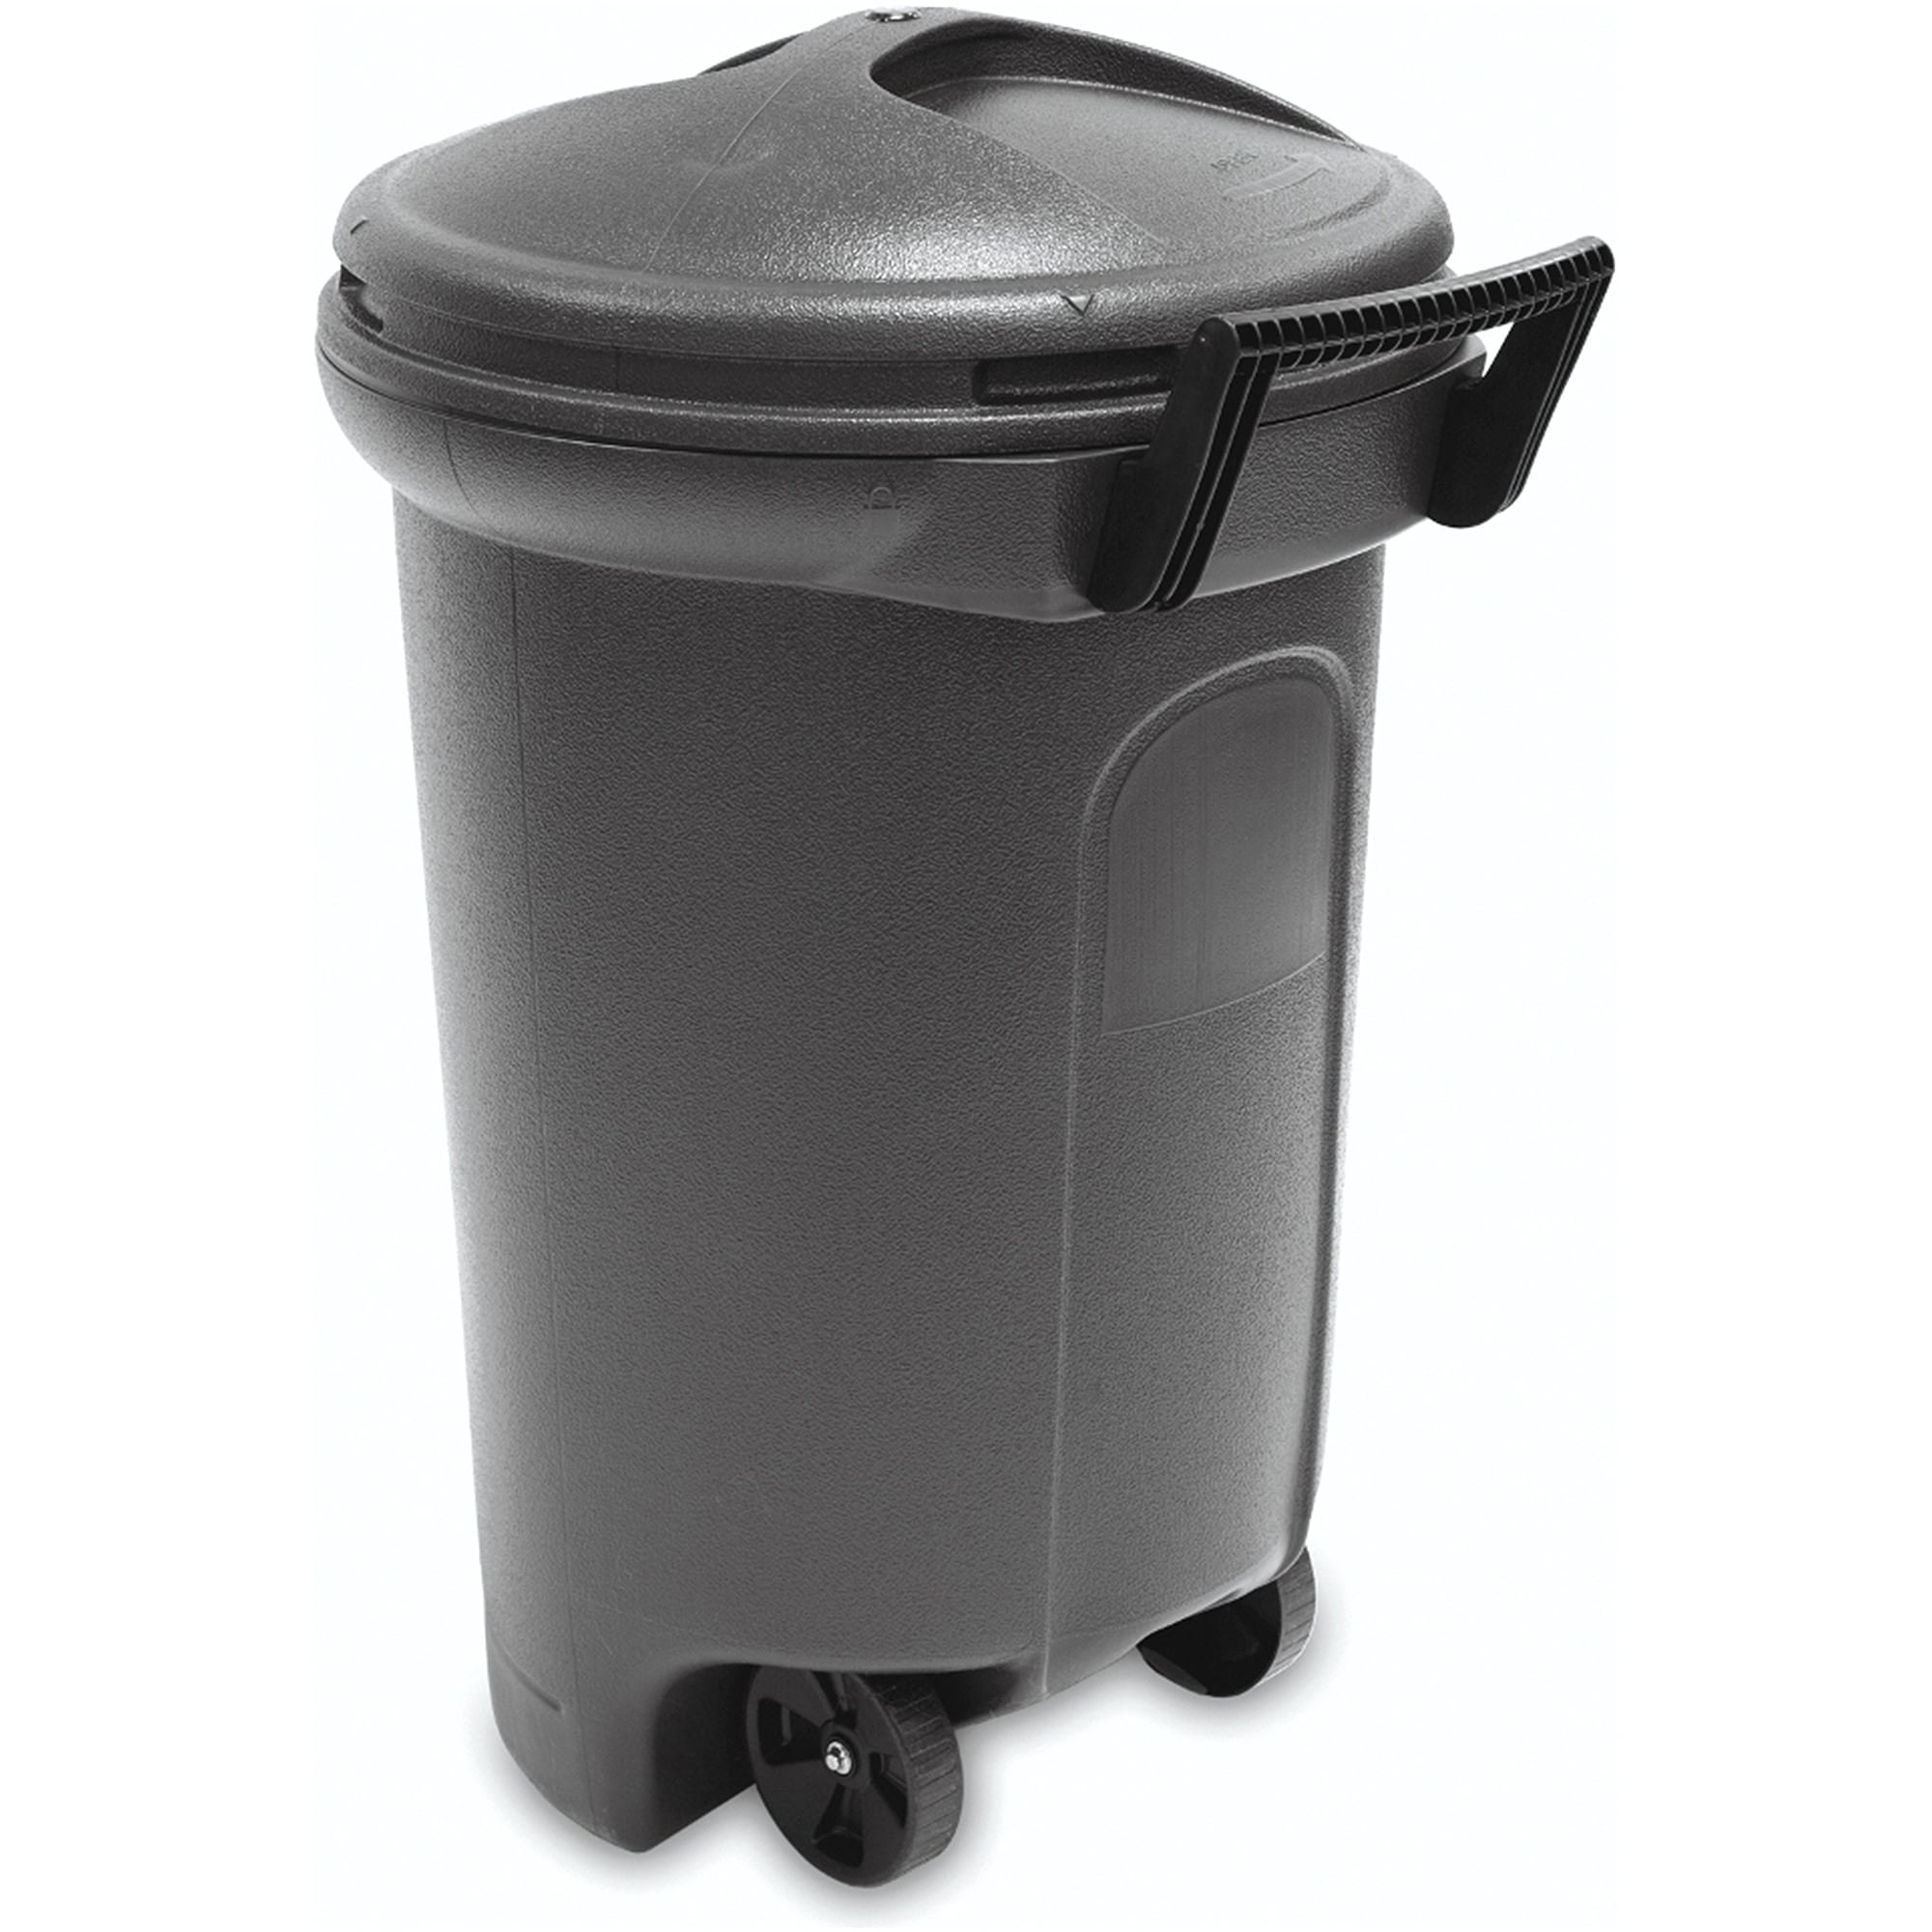 32 gallon wheeled trash can with turn & lock lid - walmart